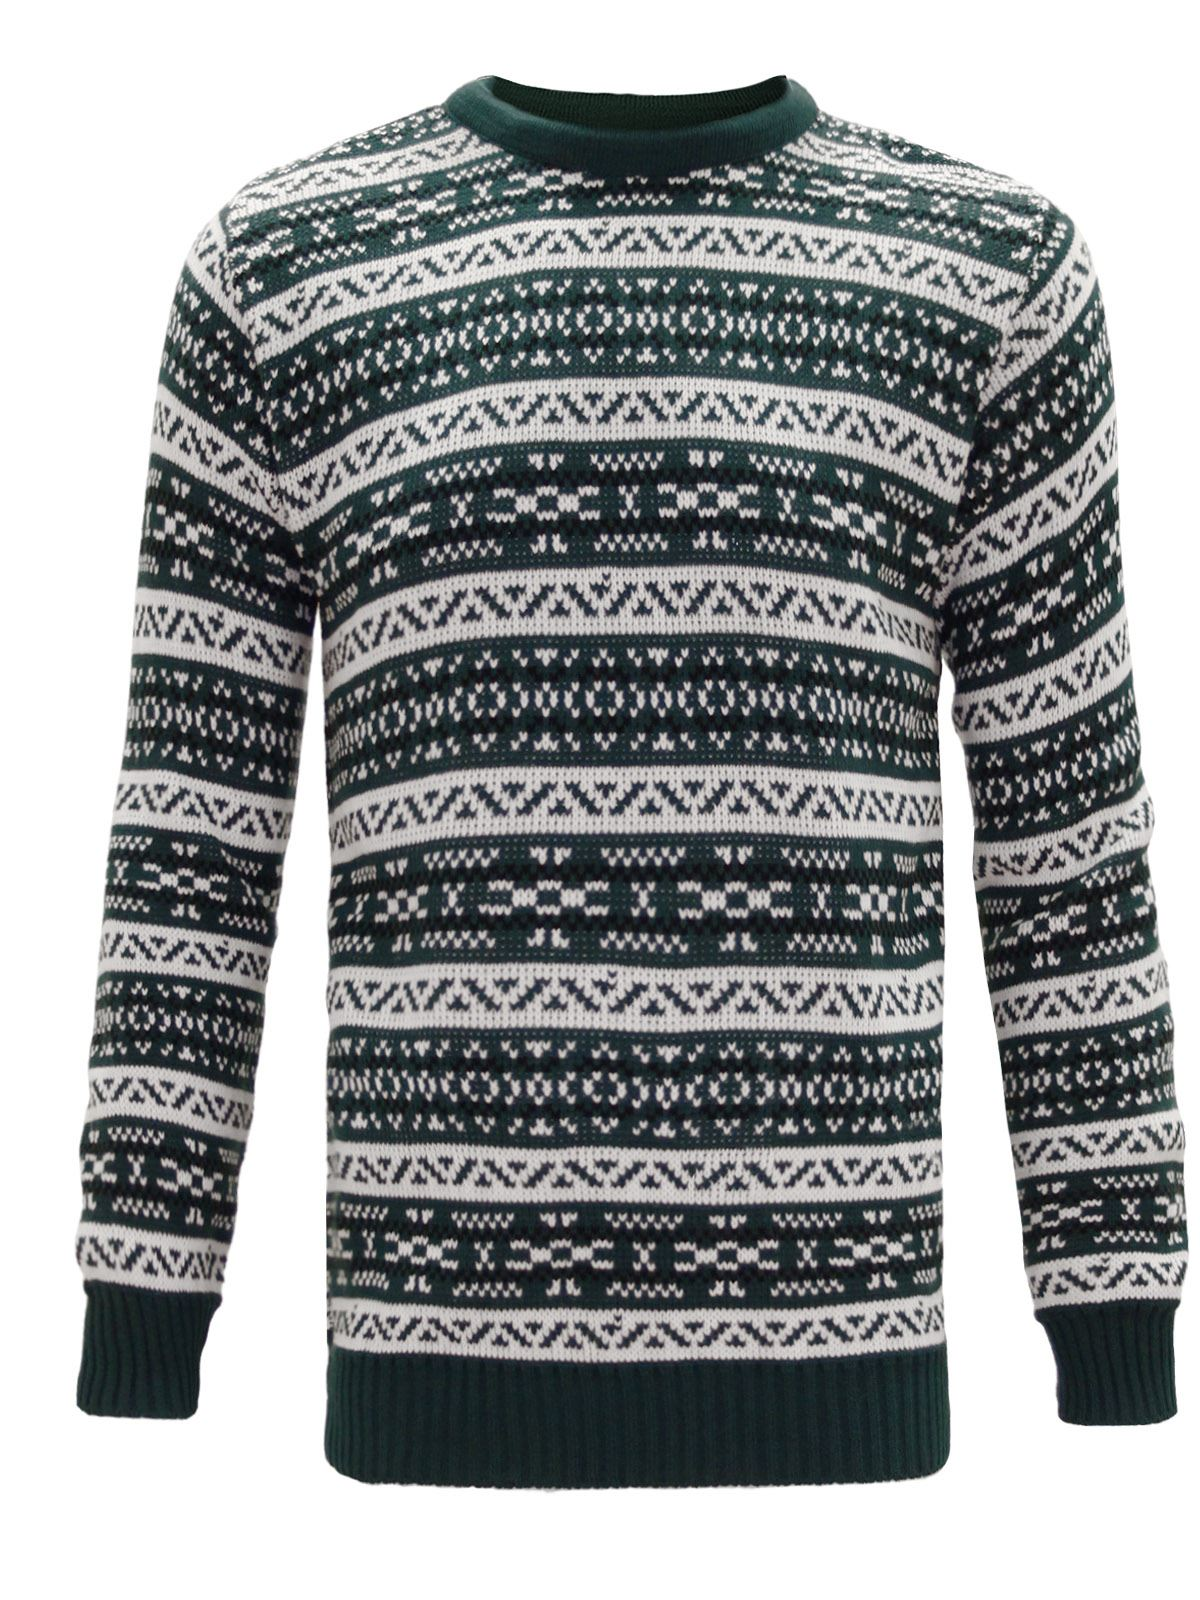 New Mens Knitted Classic Christmas Xmas Sweater Vintage Retro Nordic Jumper S...